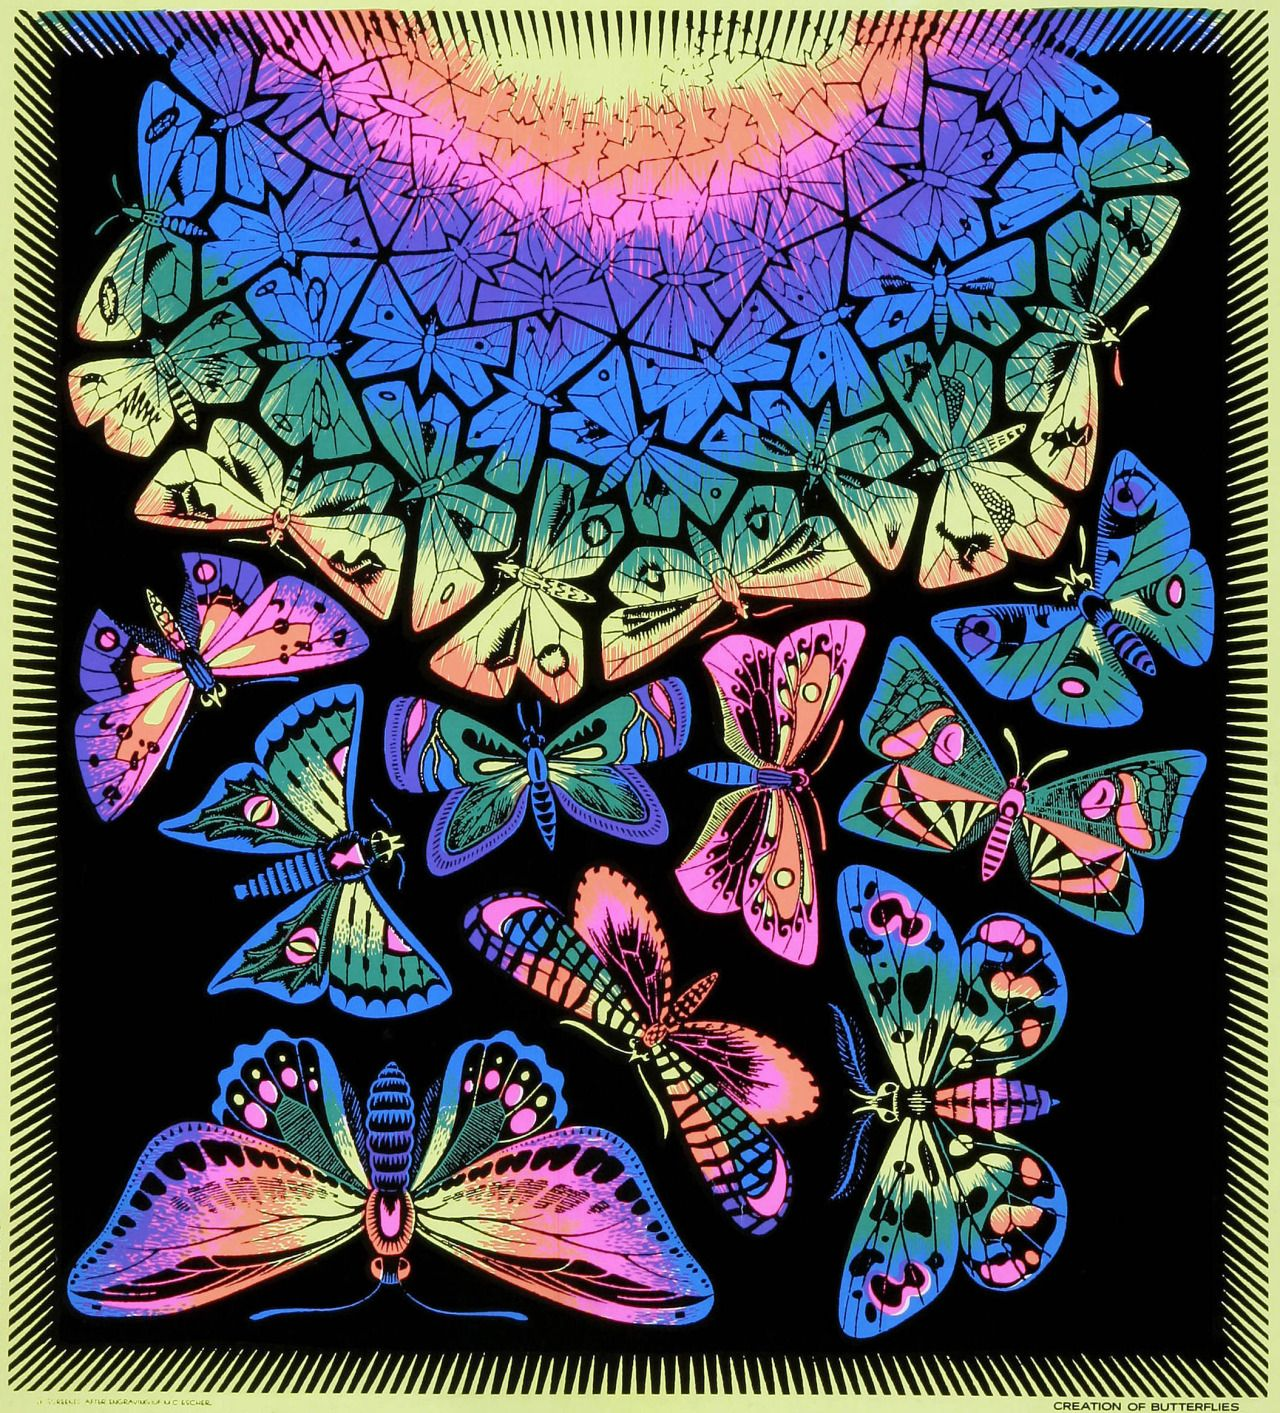 Blacklight Poster By M. C. Escher